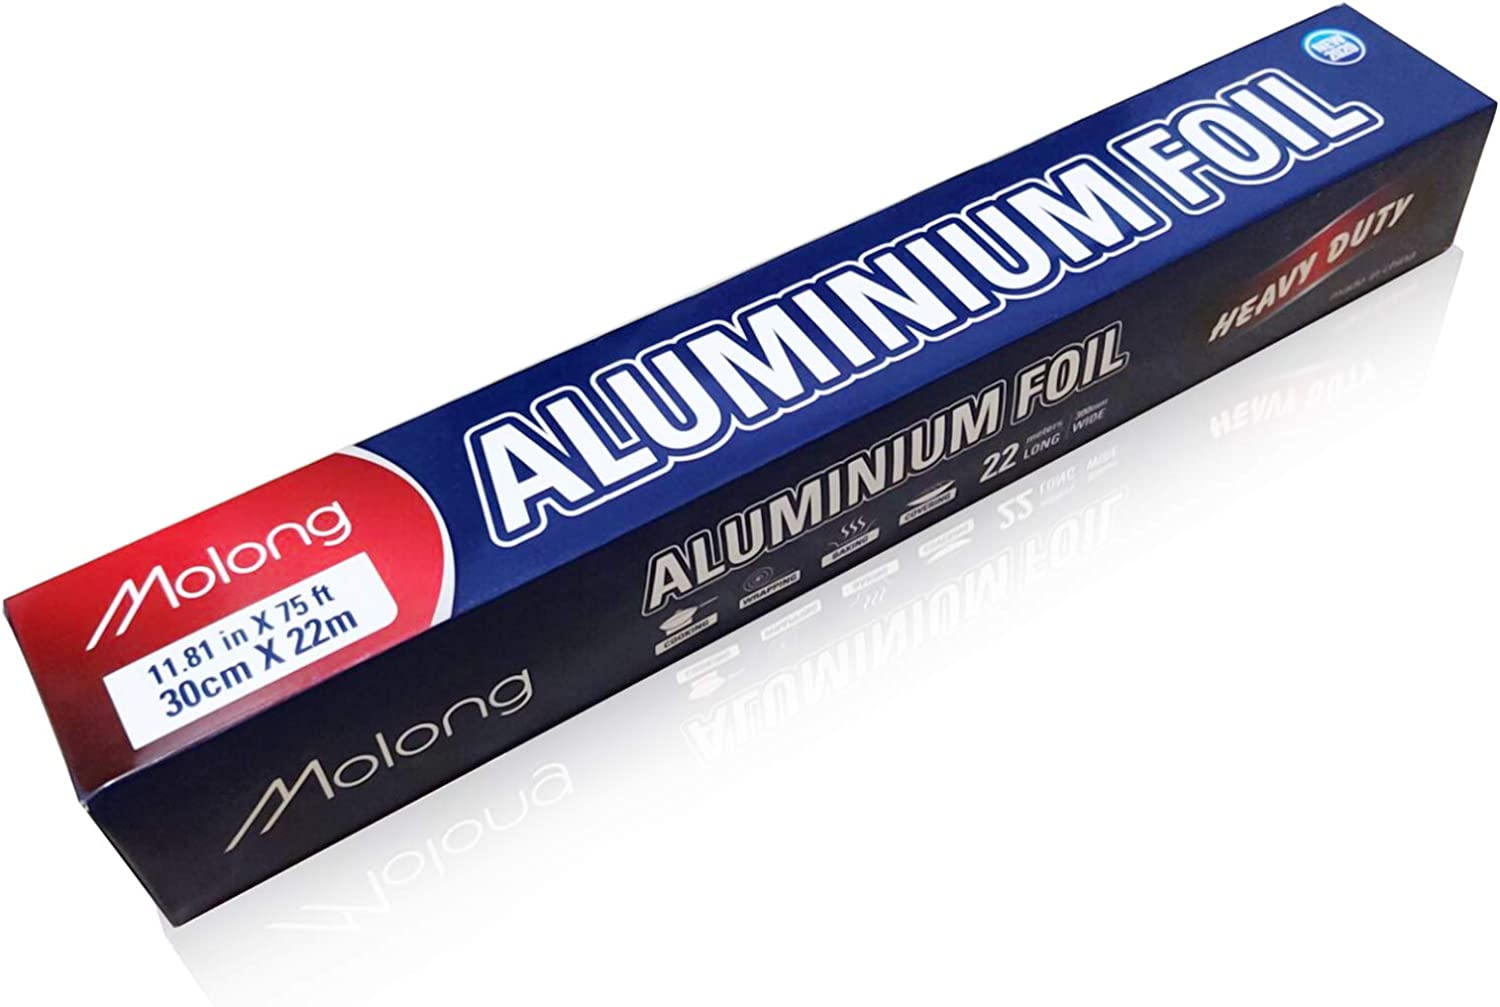 Aluminum foil roll 75 Feet Long Heavy Duty Food Foil Wrap for Grilling,Baking, Roasting, Catering with Nonstick Trait